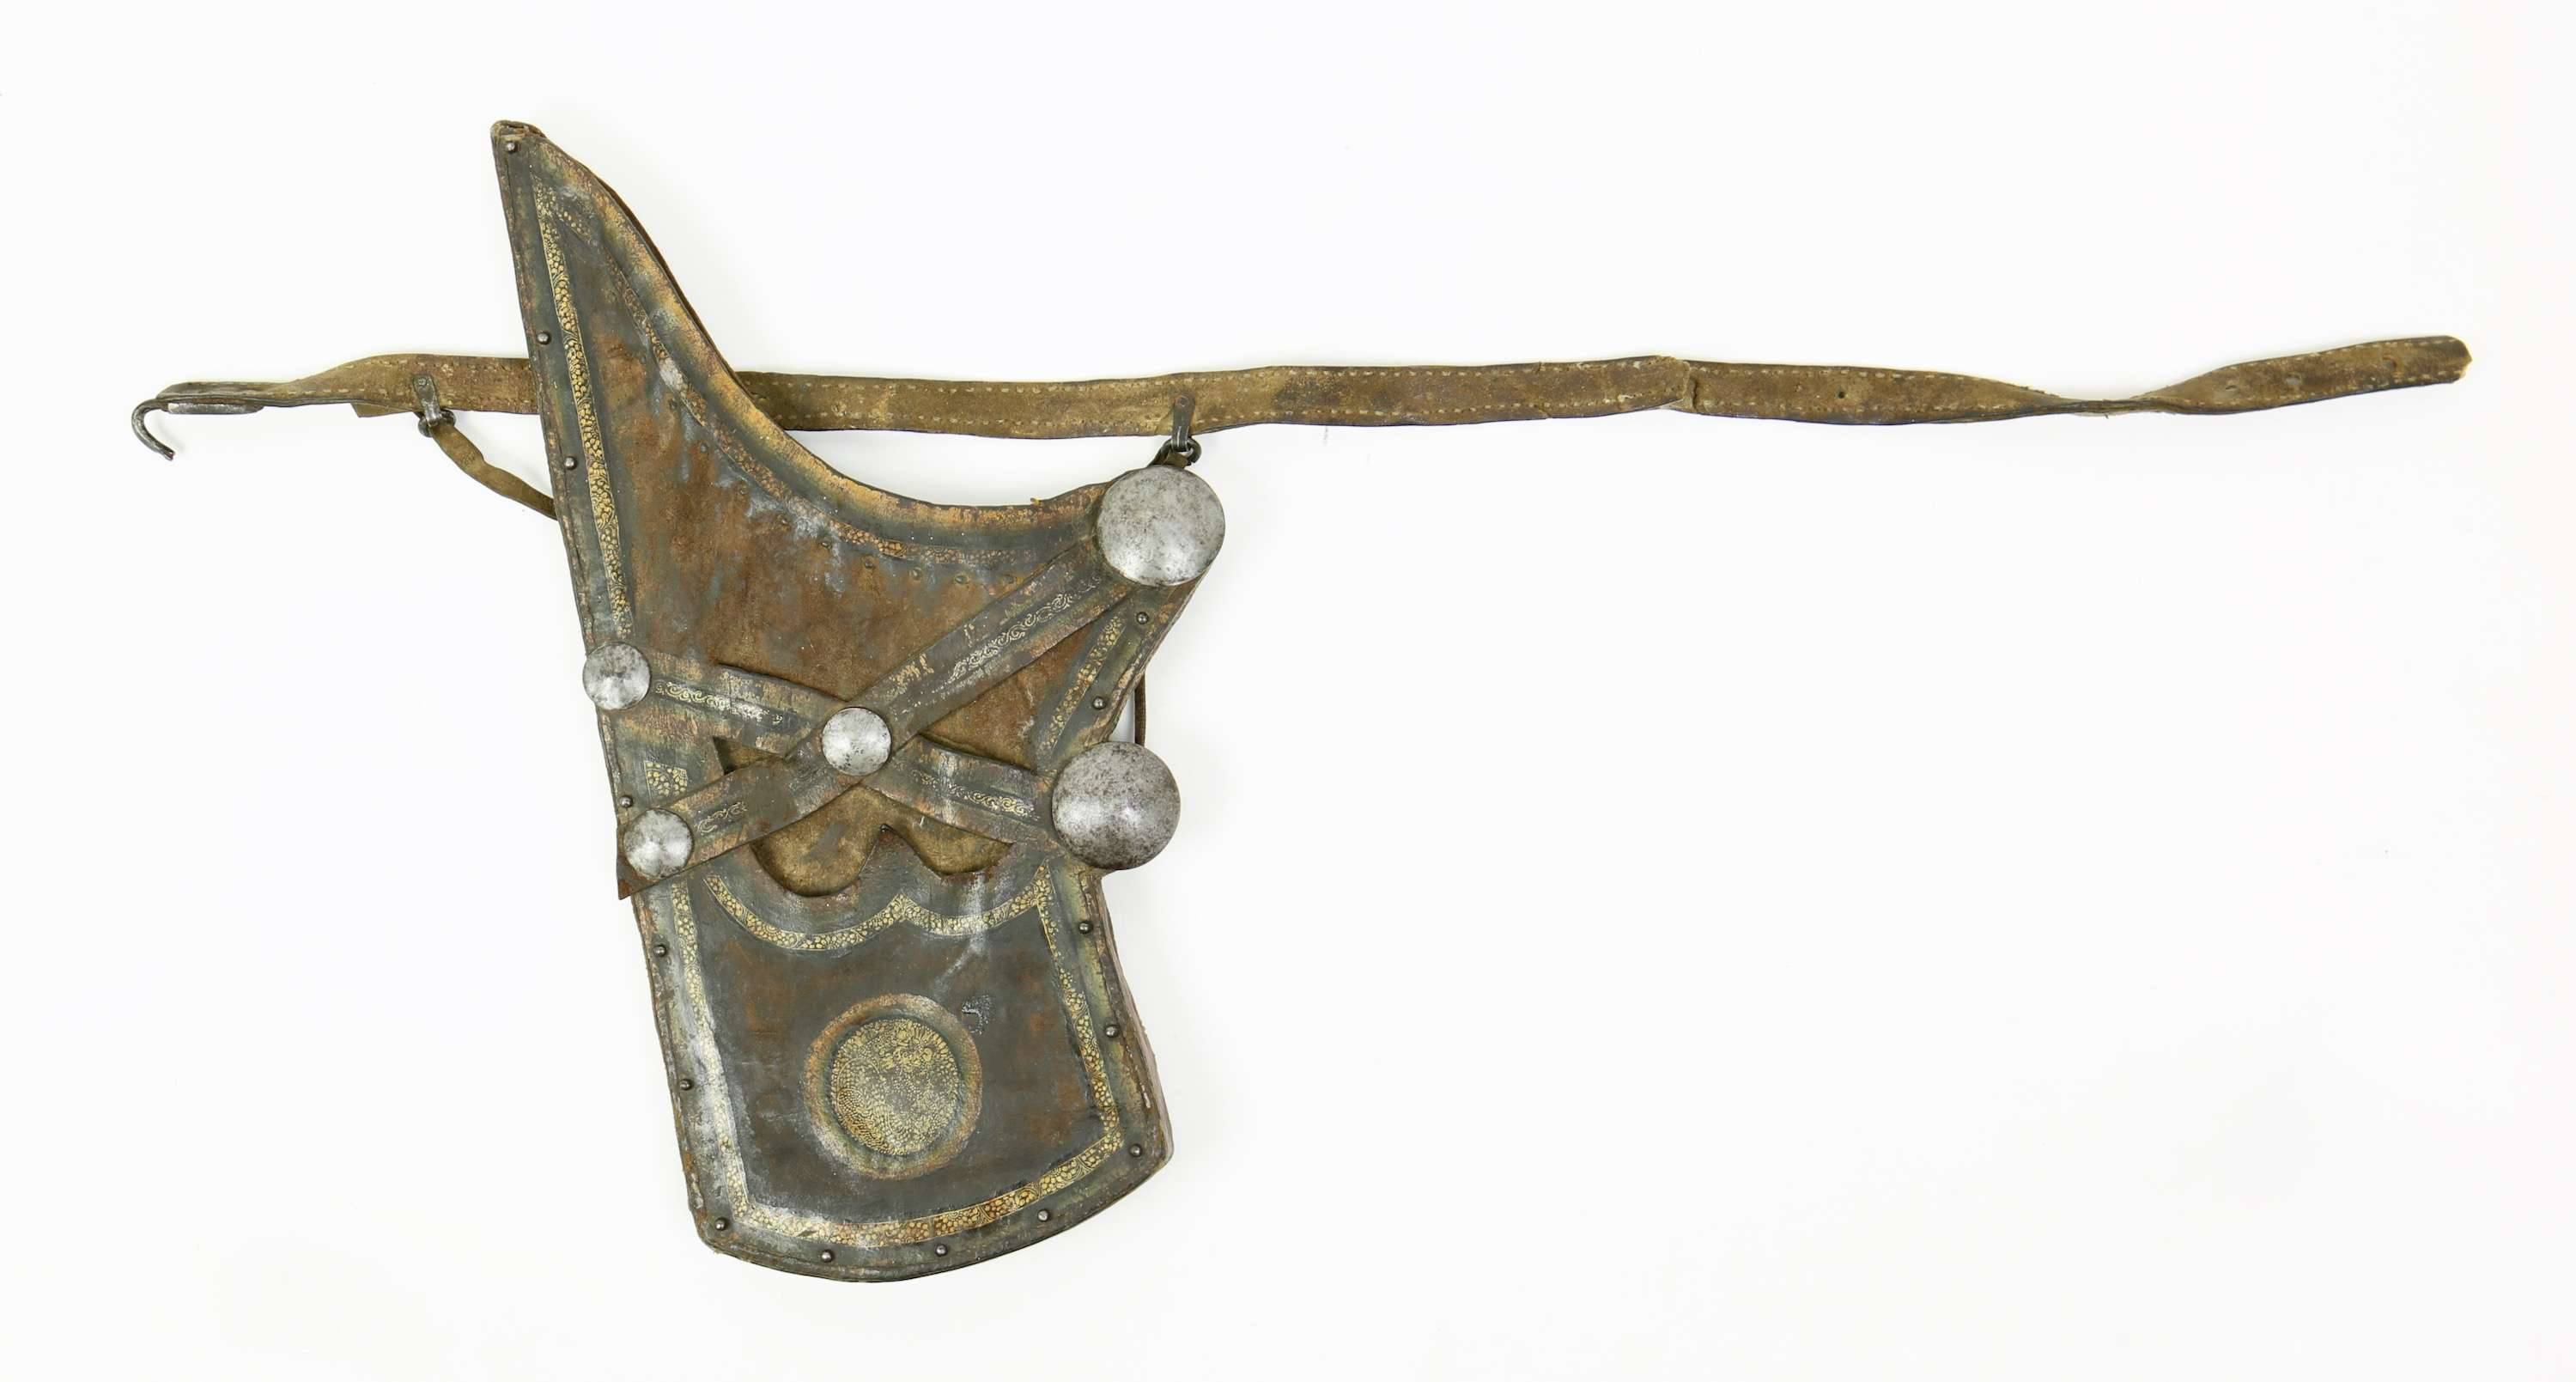 Tibetan or Mongolian quiver with belt